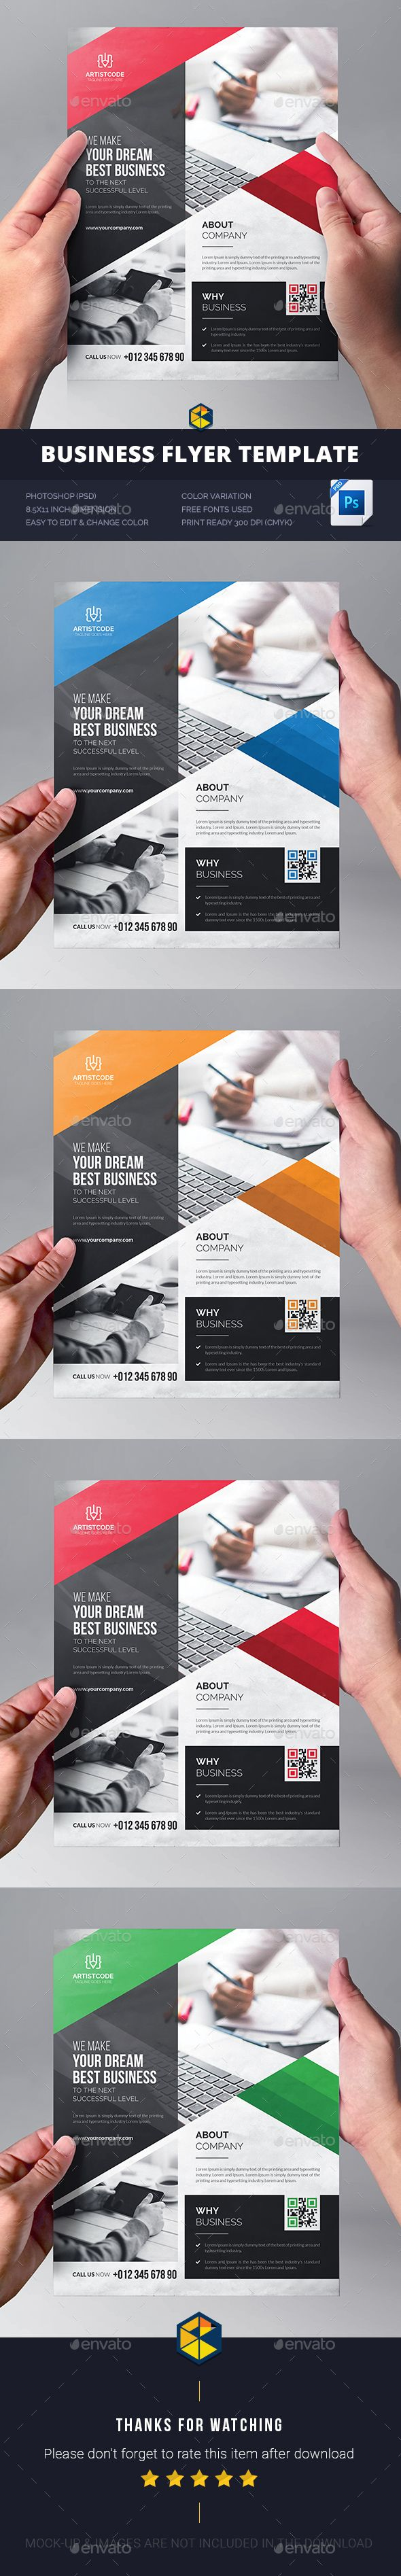 Corporate Business Flyer Template PSD. Download here: https://graphicriver.net/item/corporate-business-flyer/17519271?ref=ksioks